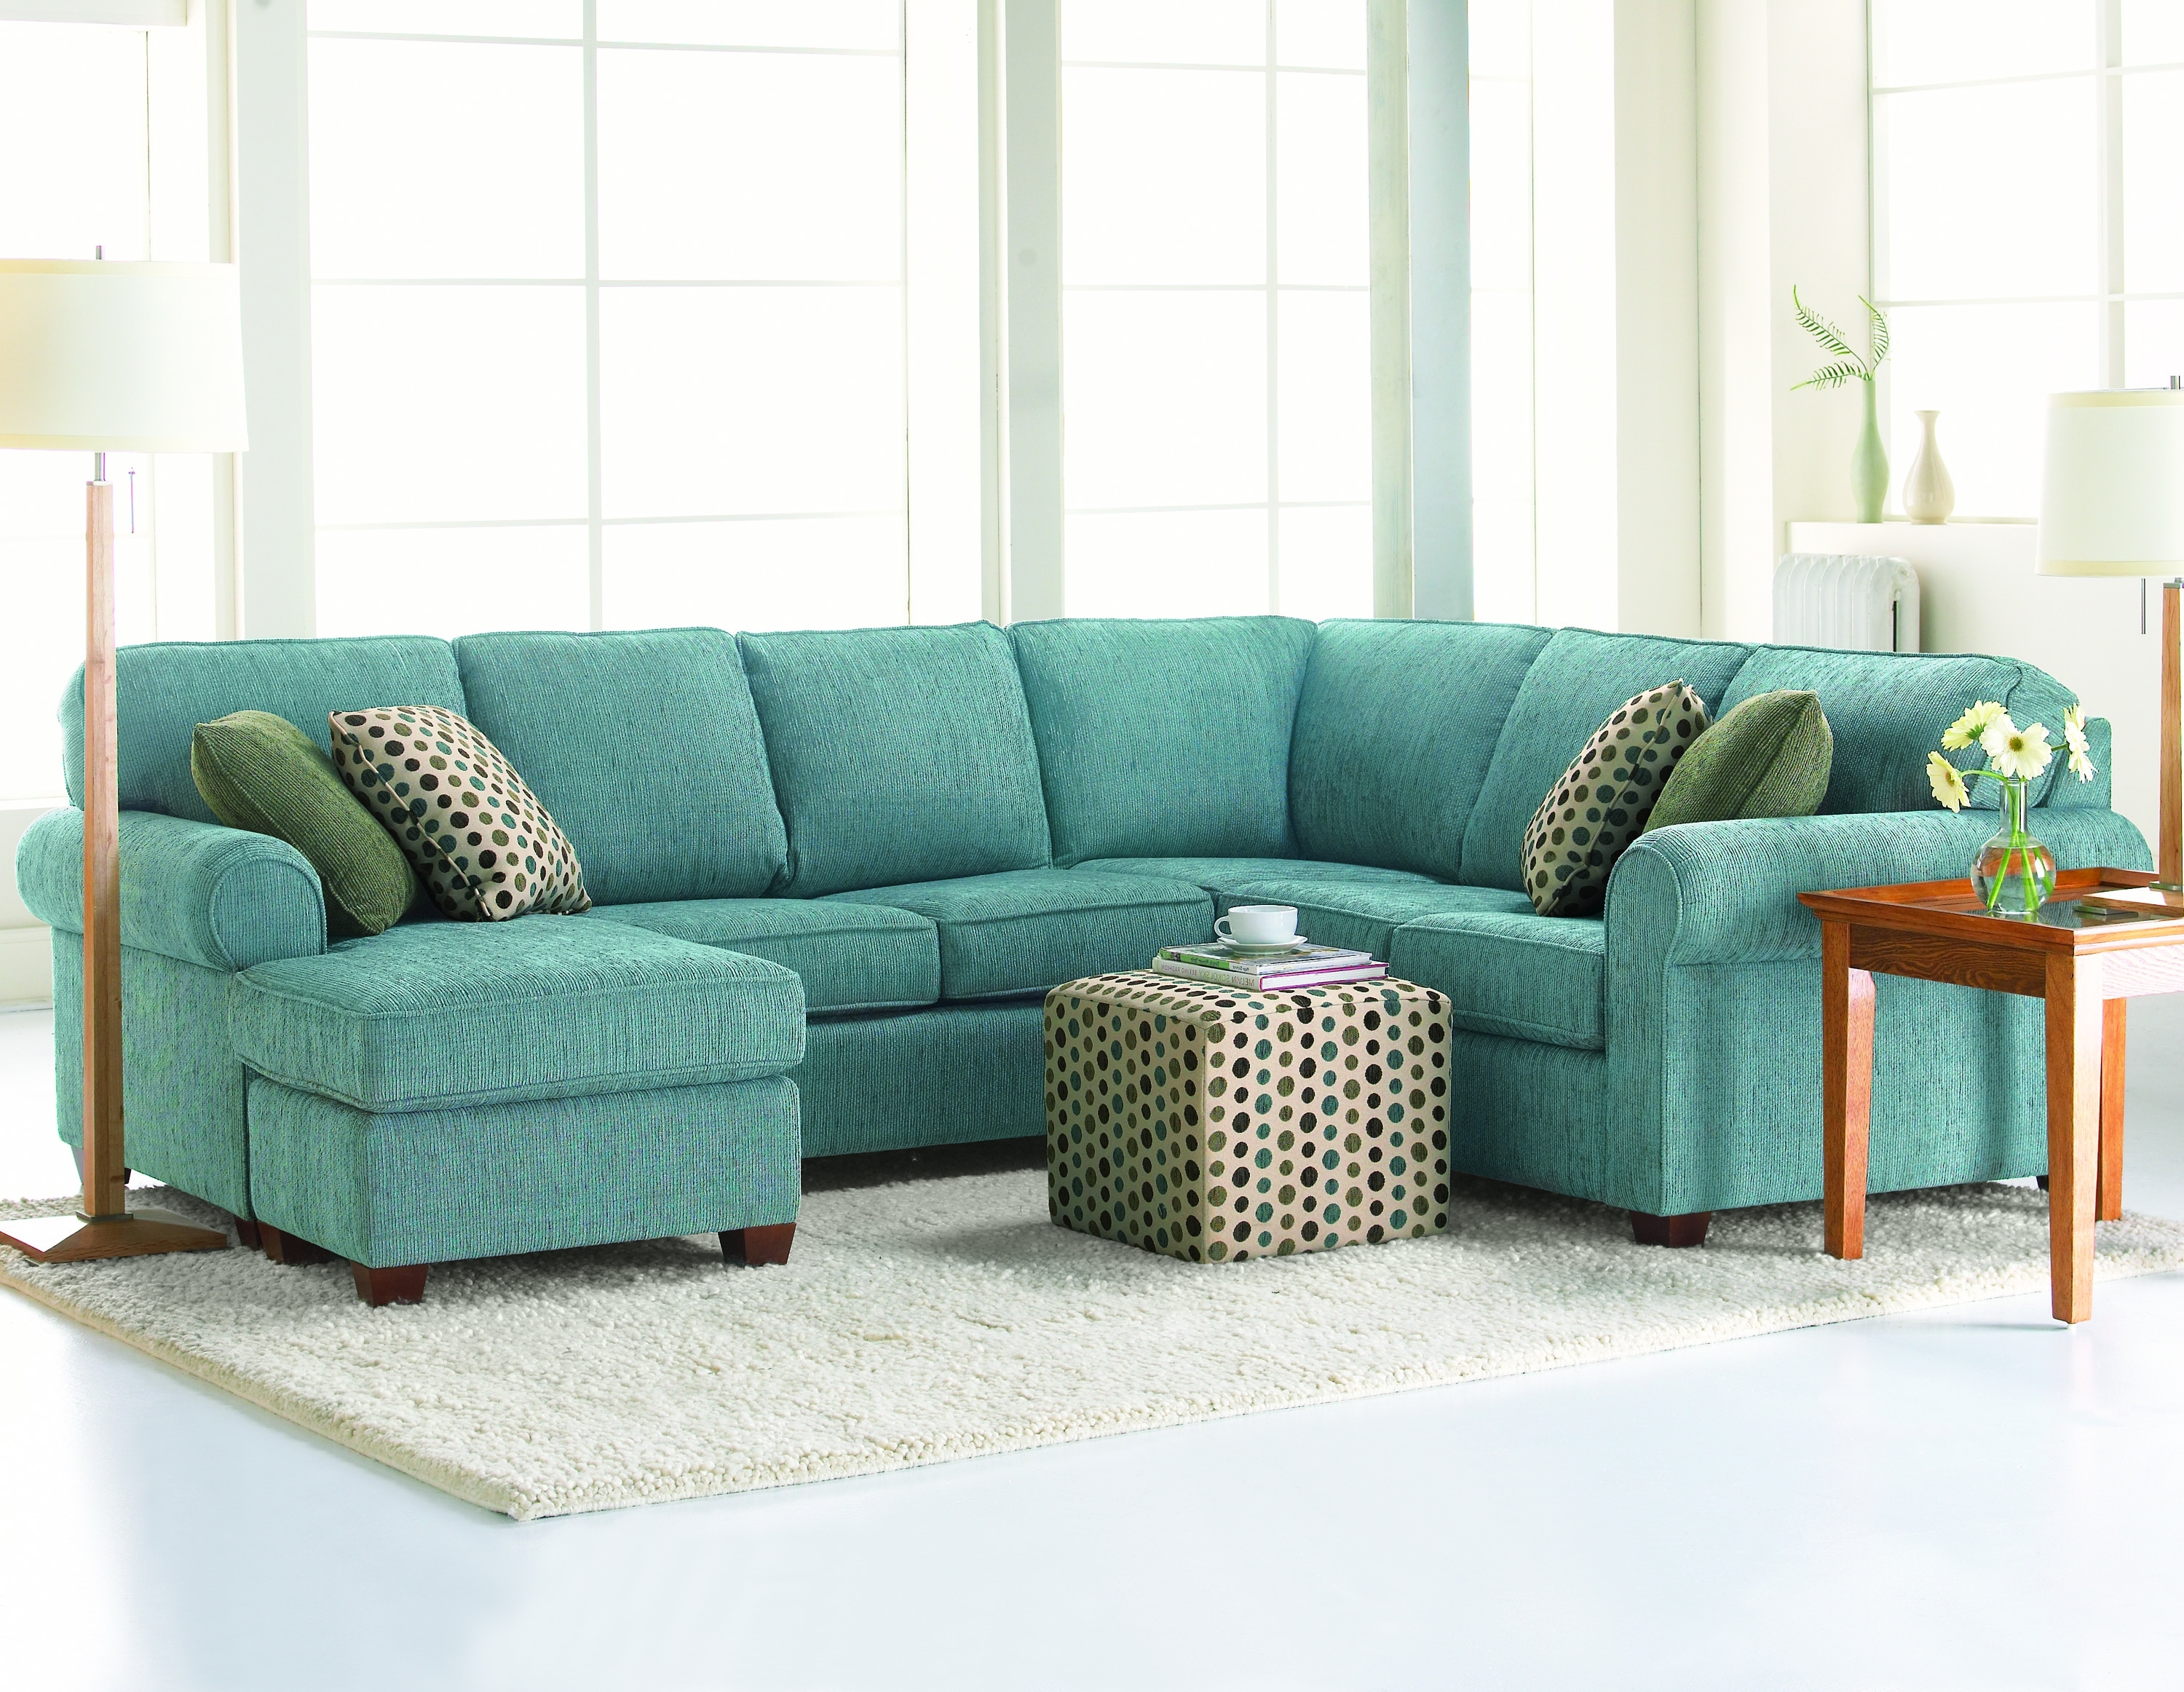 Newest Ontario Sectional Sofas Pertaining To Sectional Sofas – Thompson Brothers Furniture (View 7 of 15)